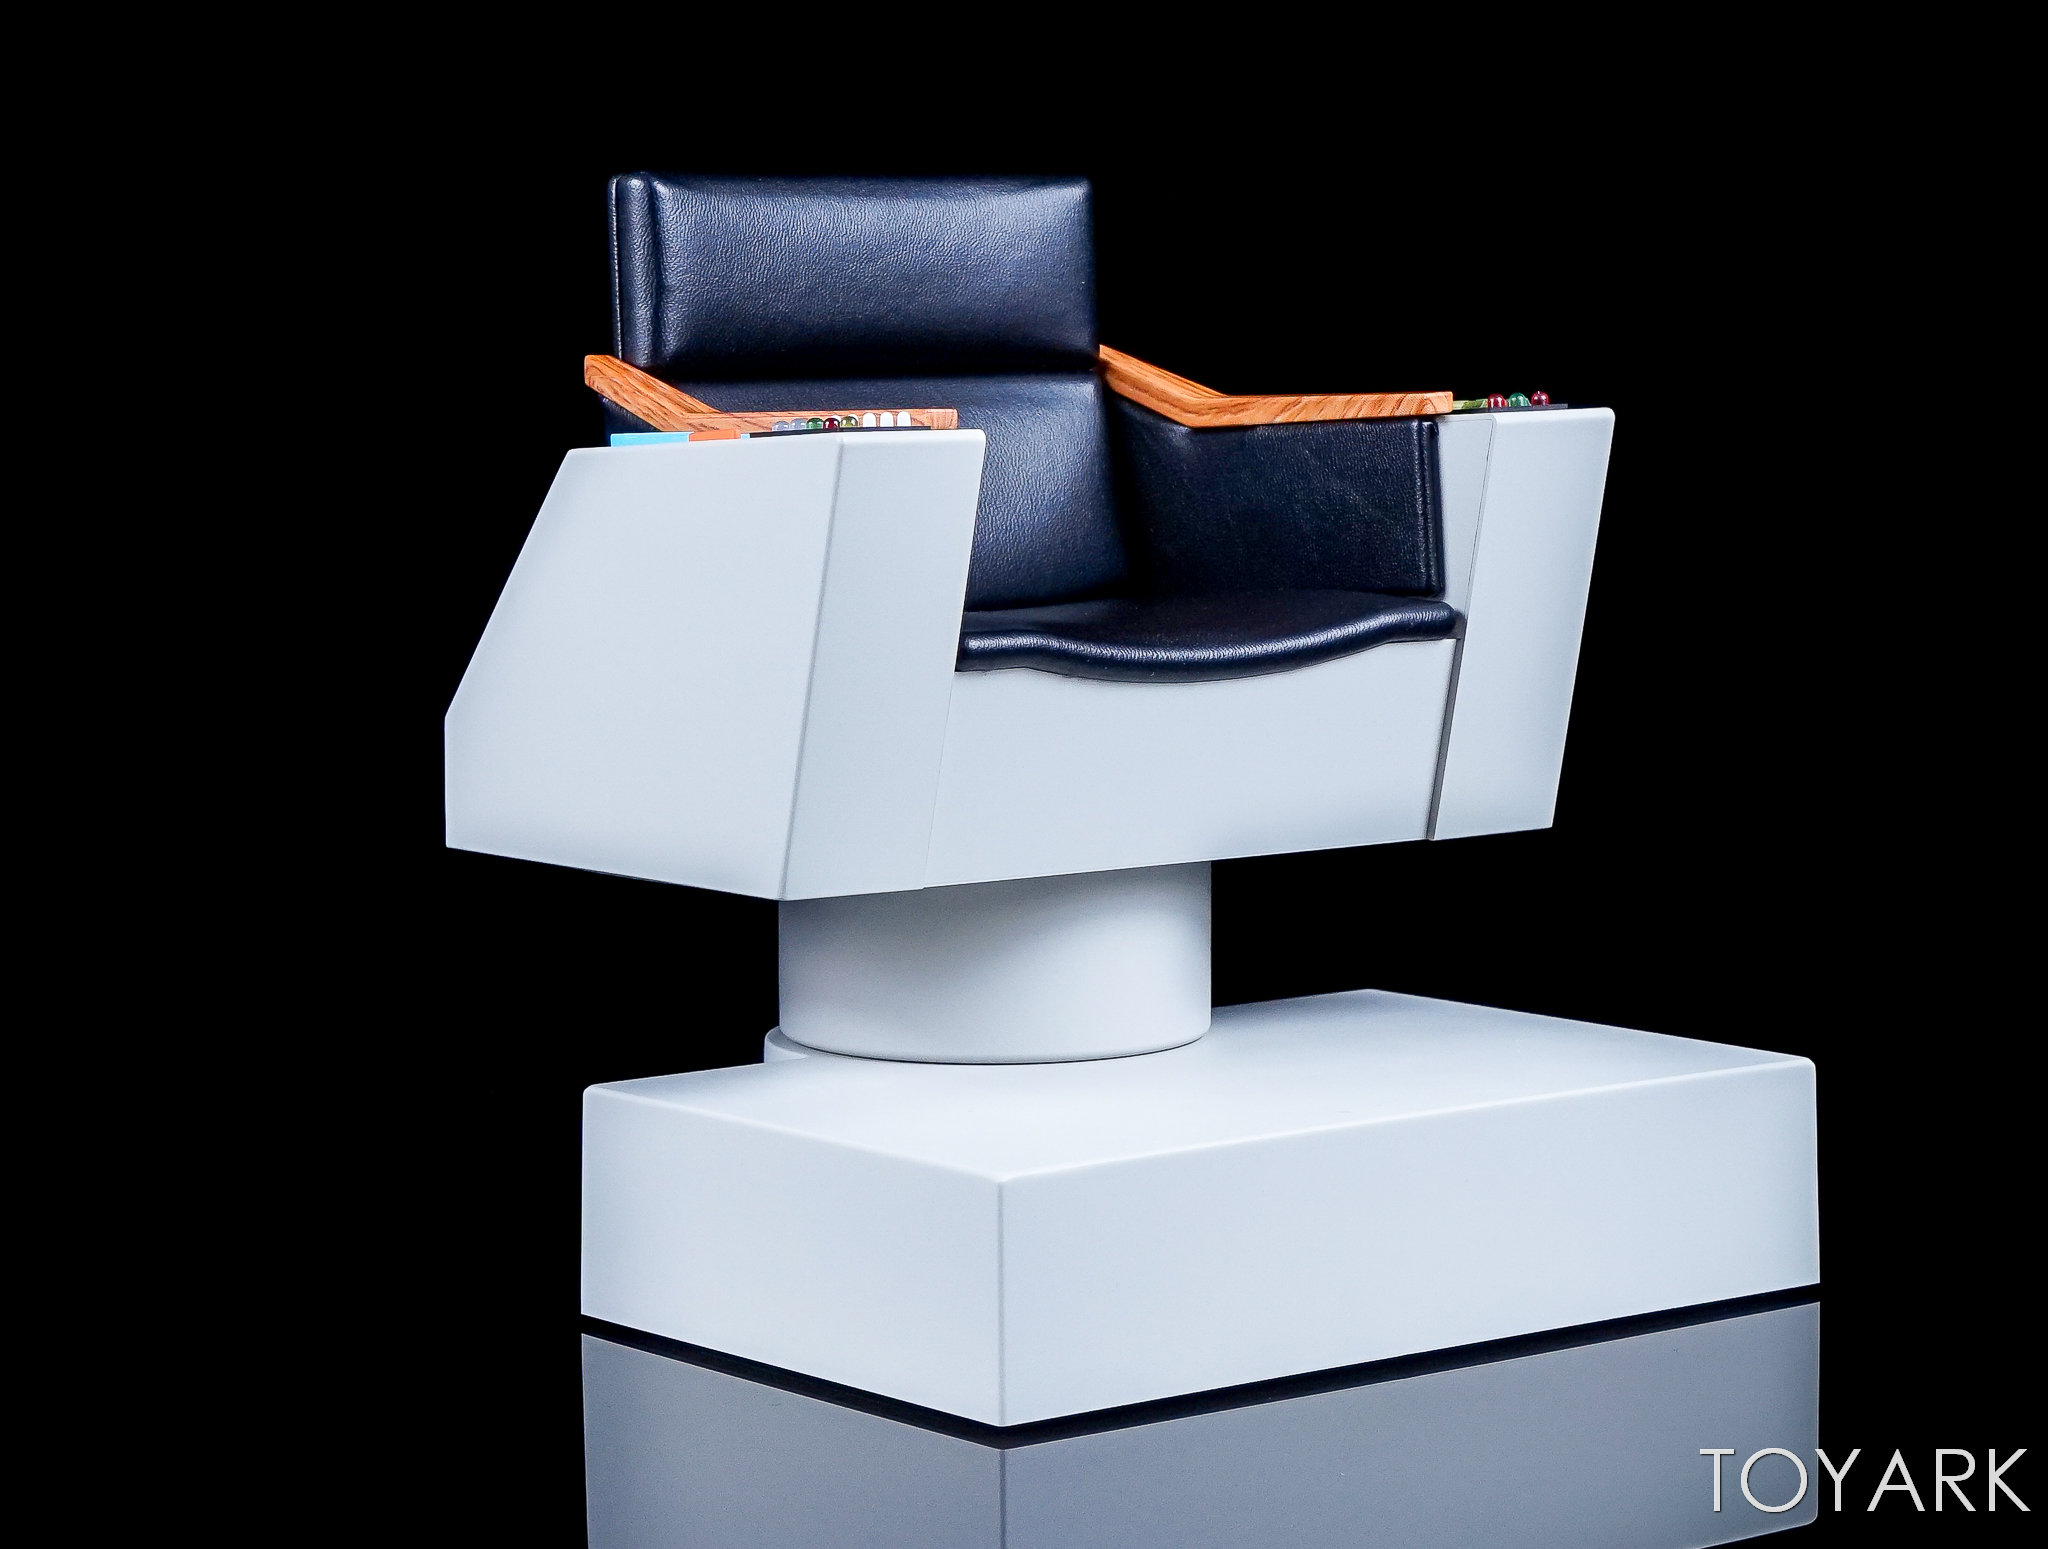 http://news.toyark.com/wp-content/uploads/sites/4/2017/12/QMX-Star-Trek-Captain-Kirk-Chair-011.jpg